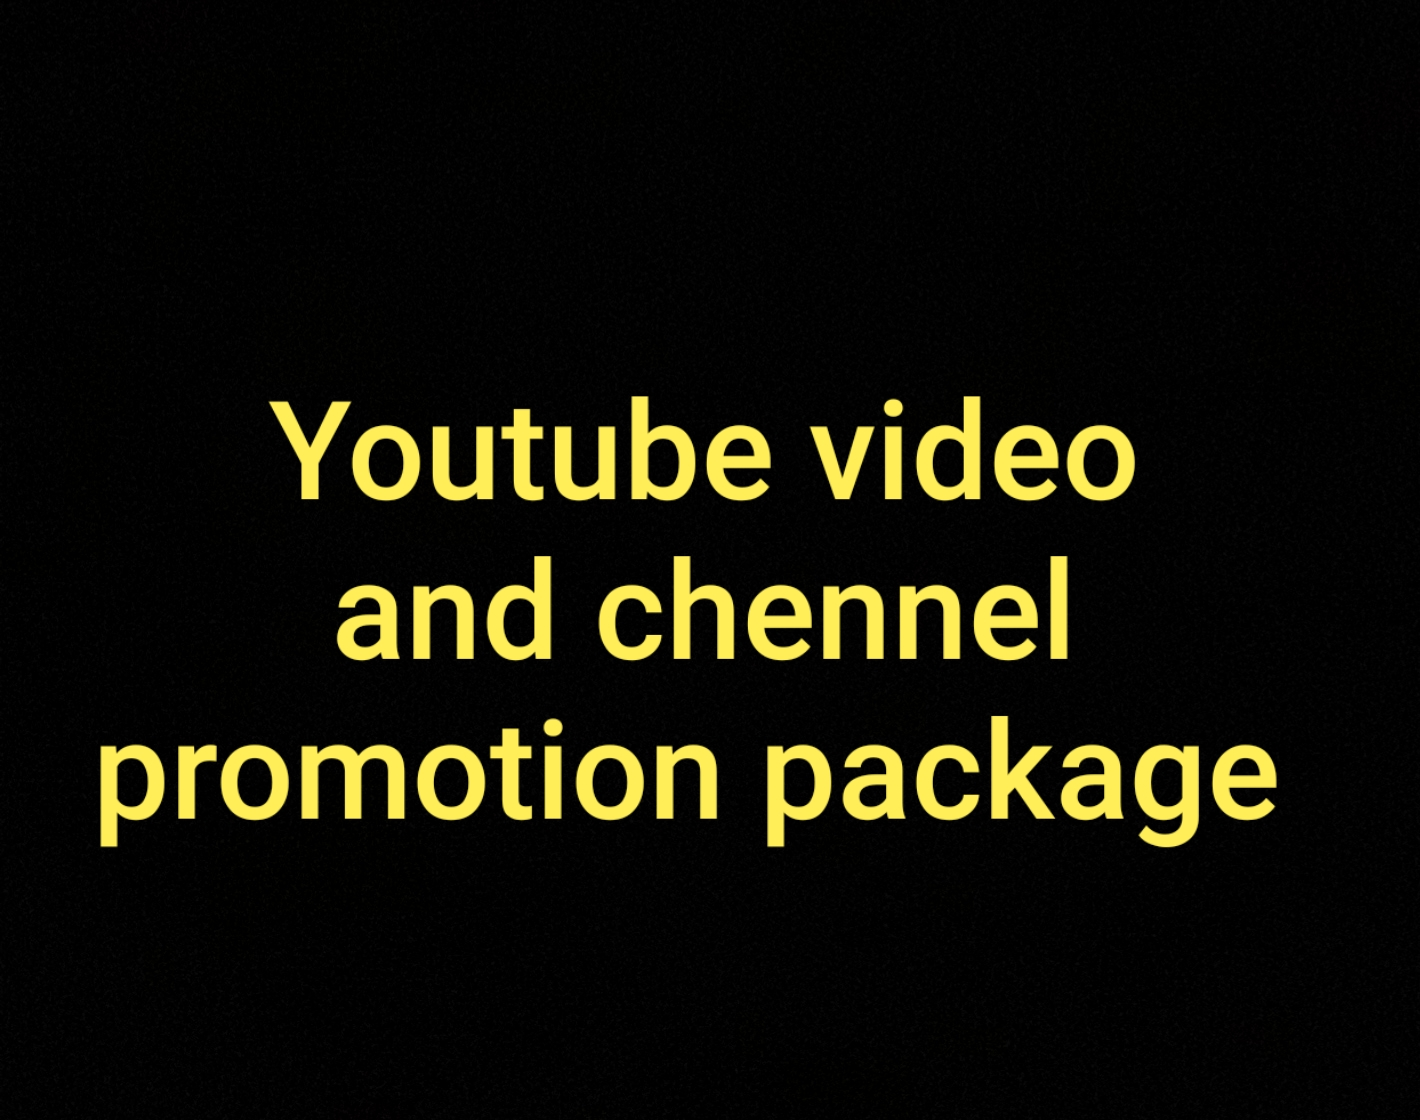 Organic non drop video and channel promotion